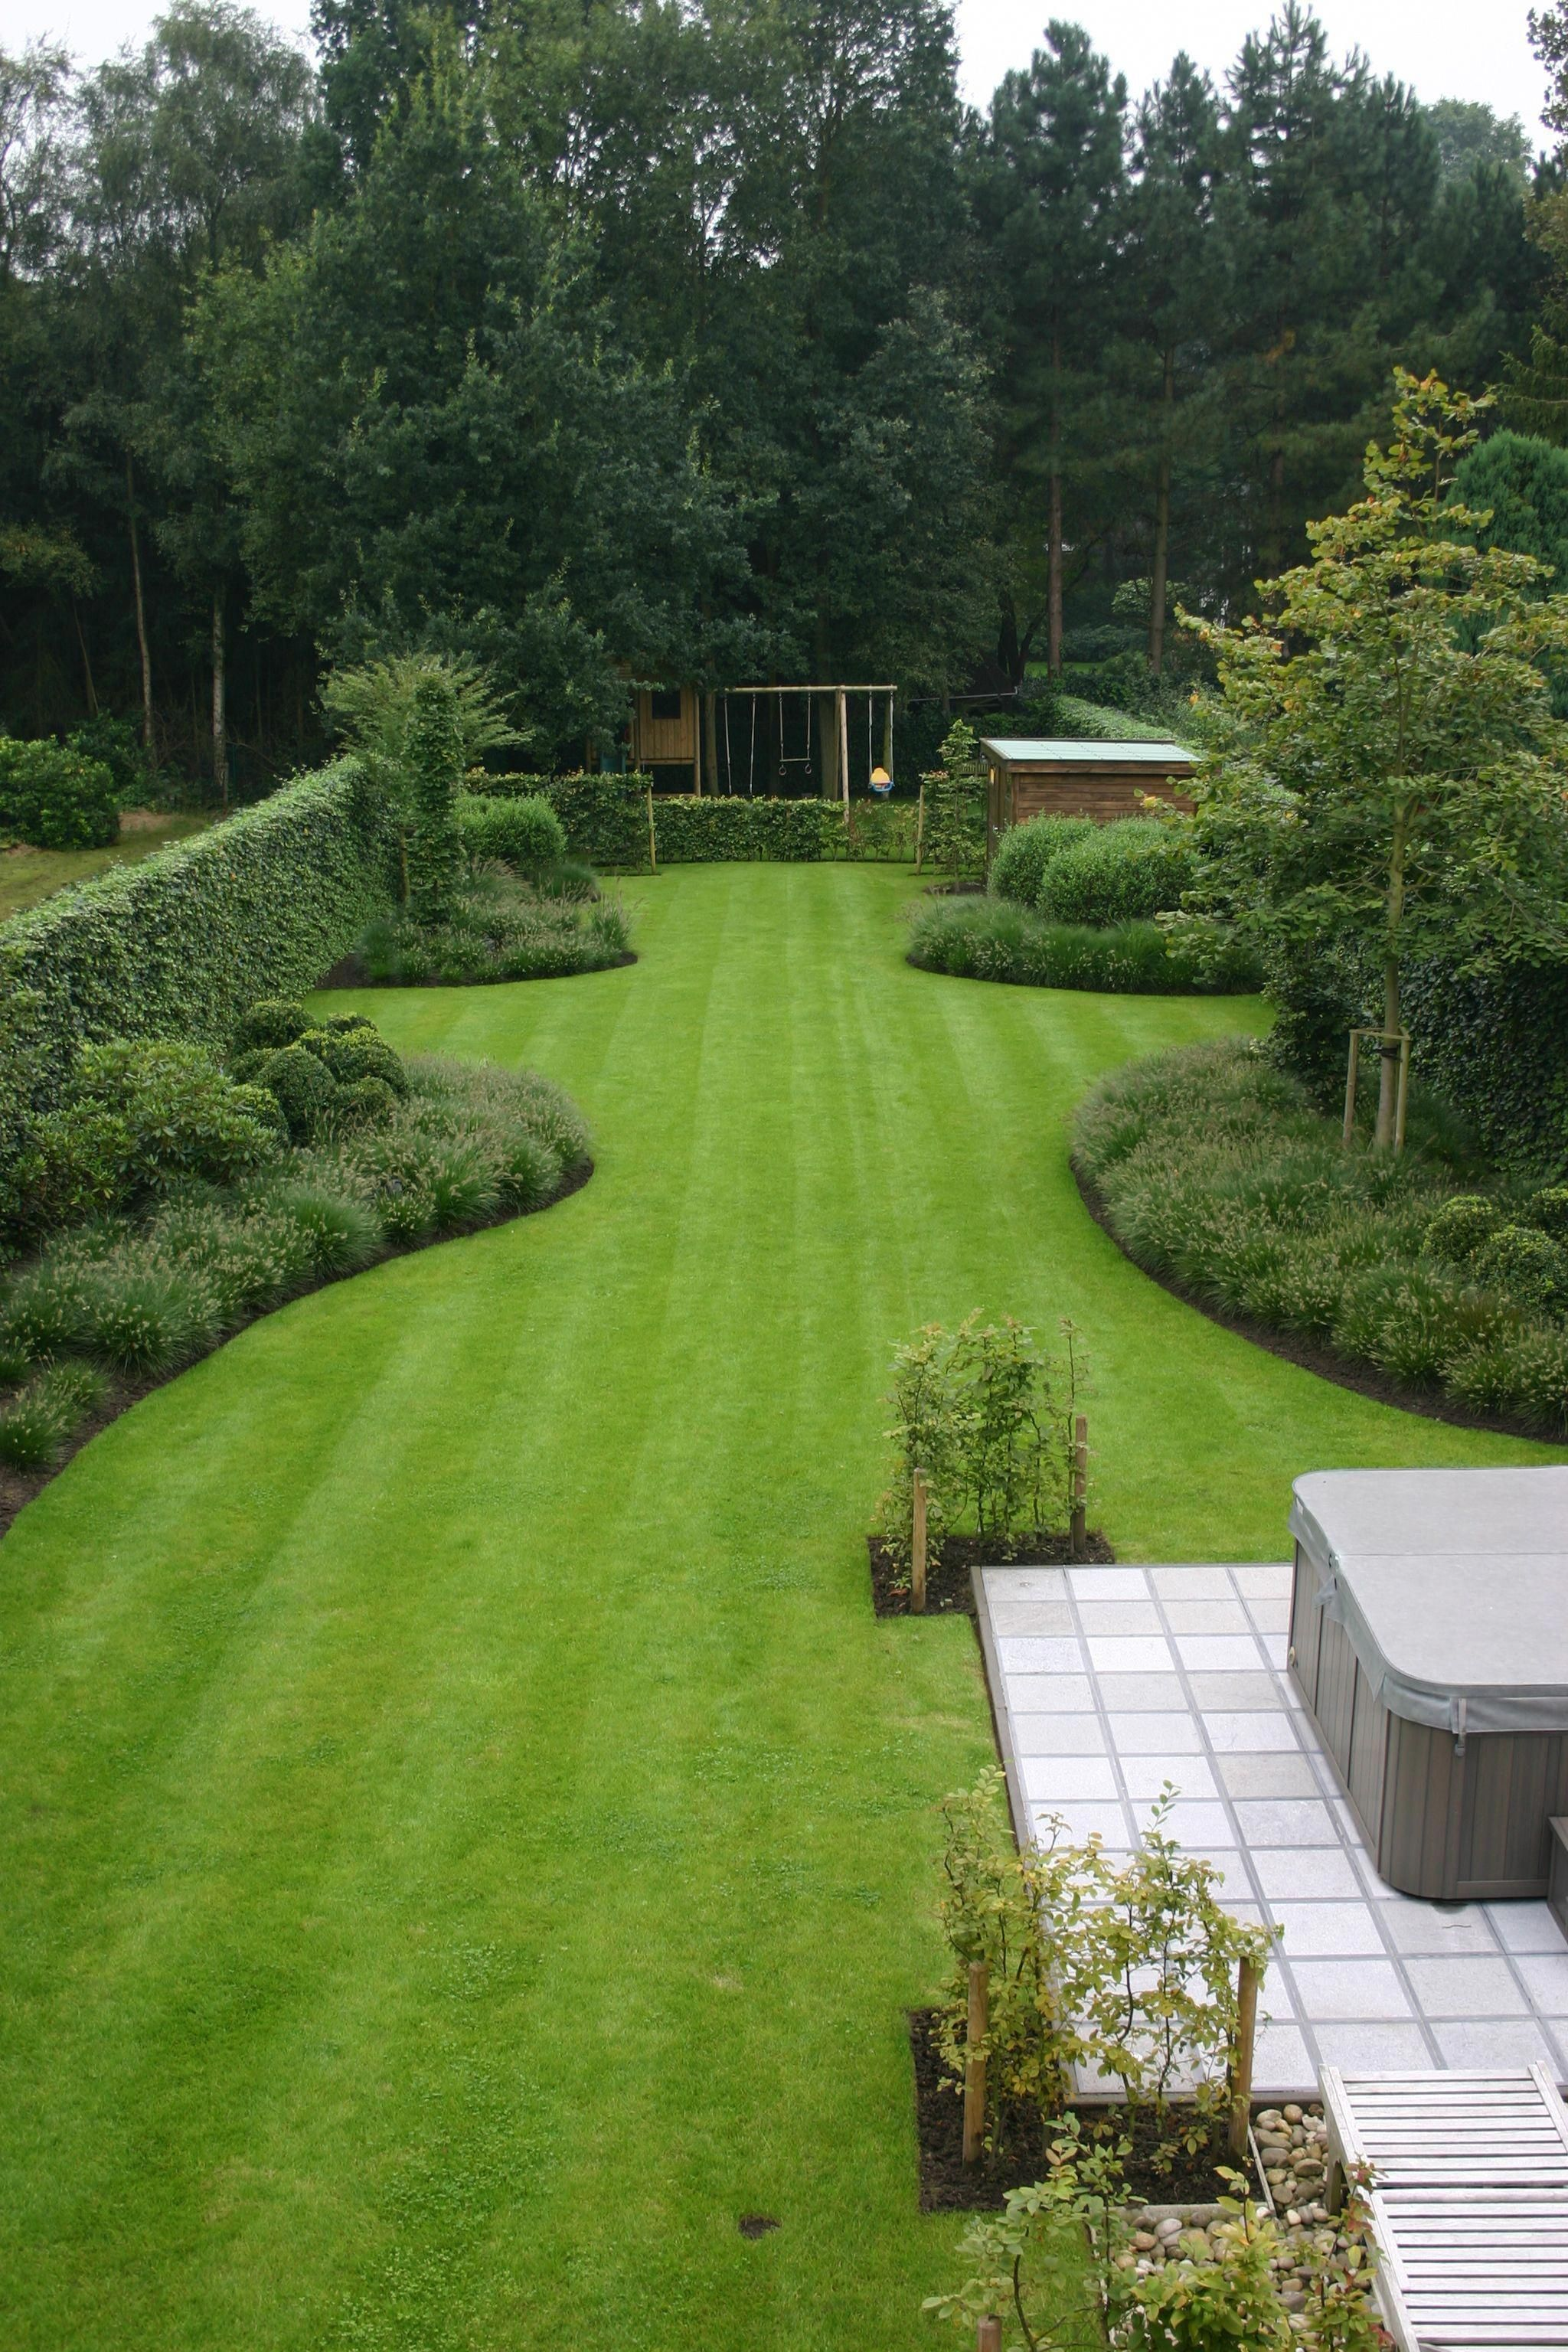 All about backyard landscaping ideas on a budget, small, layout